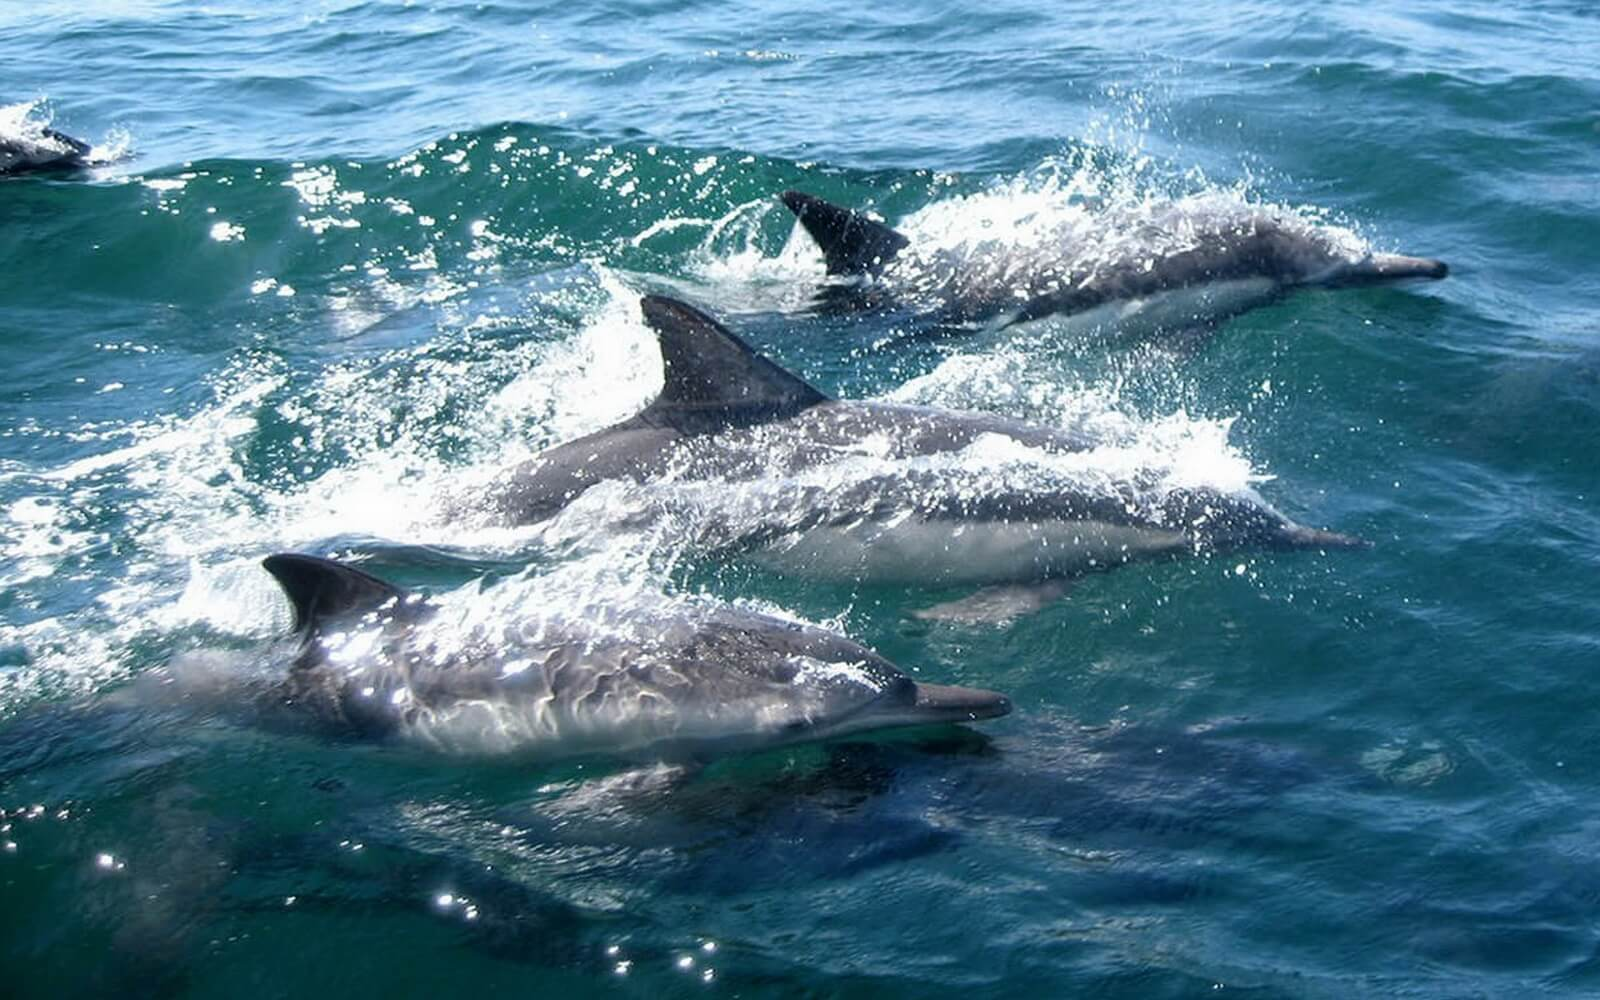 Dolphins play in a boats wake